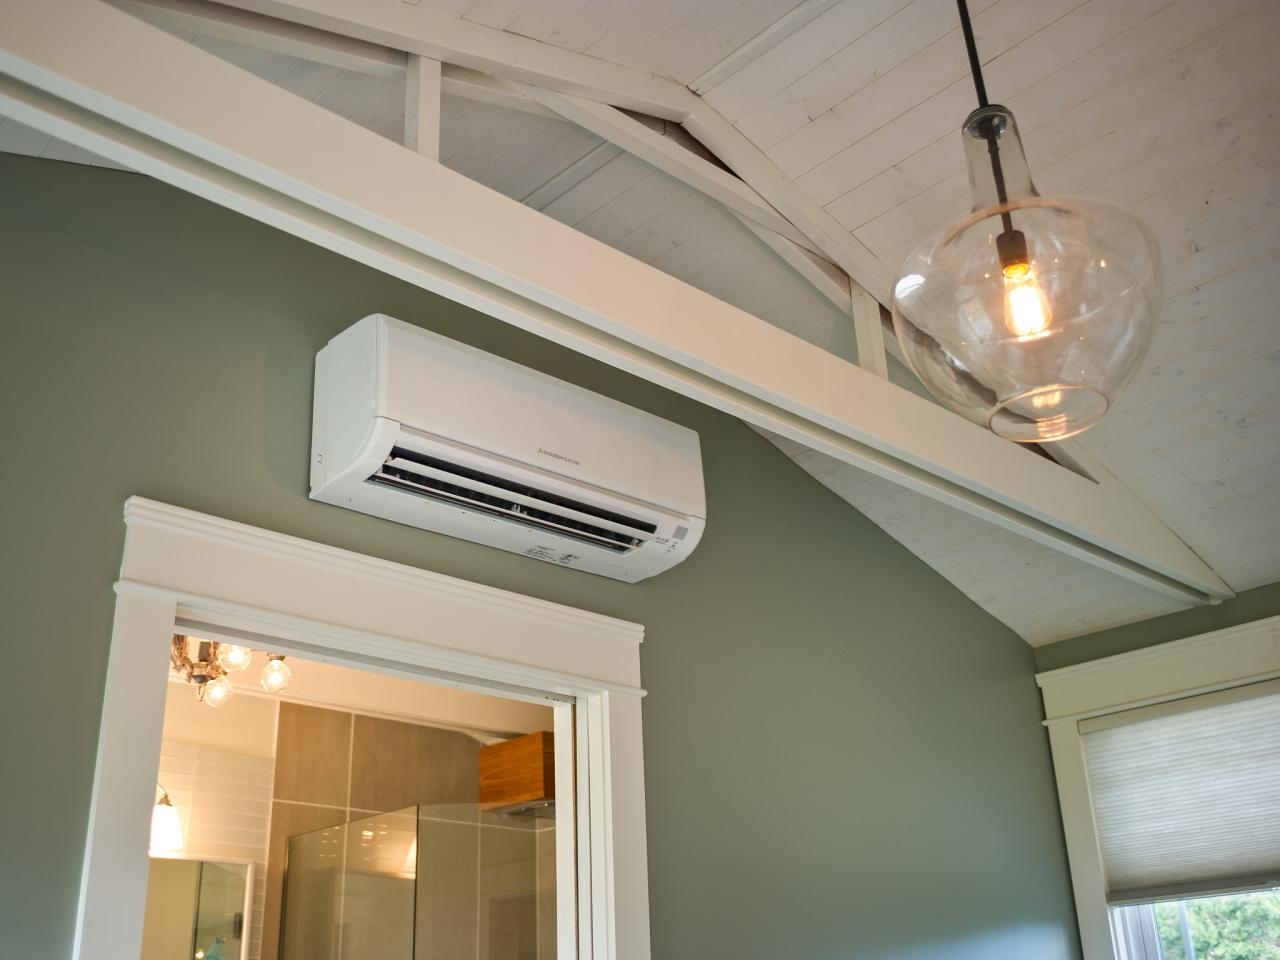 Mitsubishi Air Conditioner Over Door